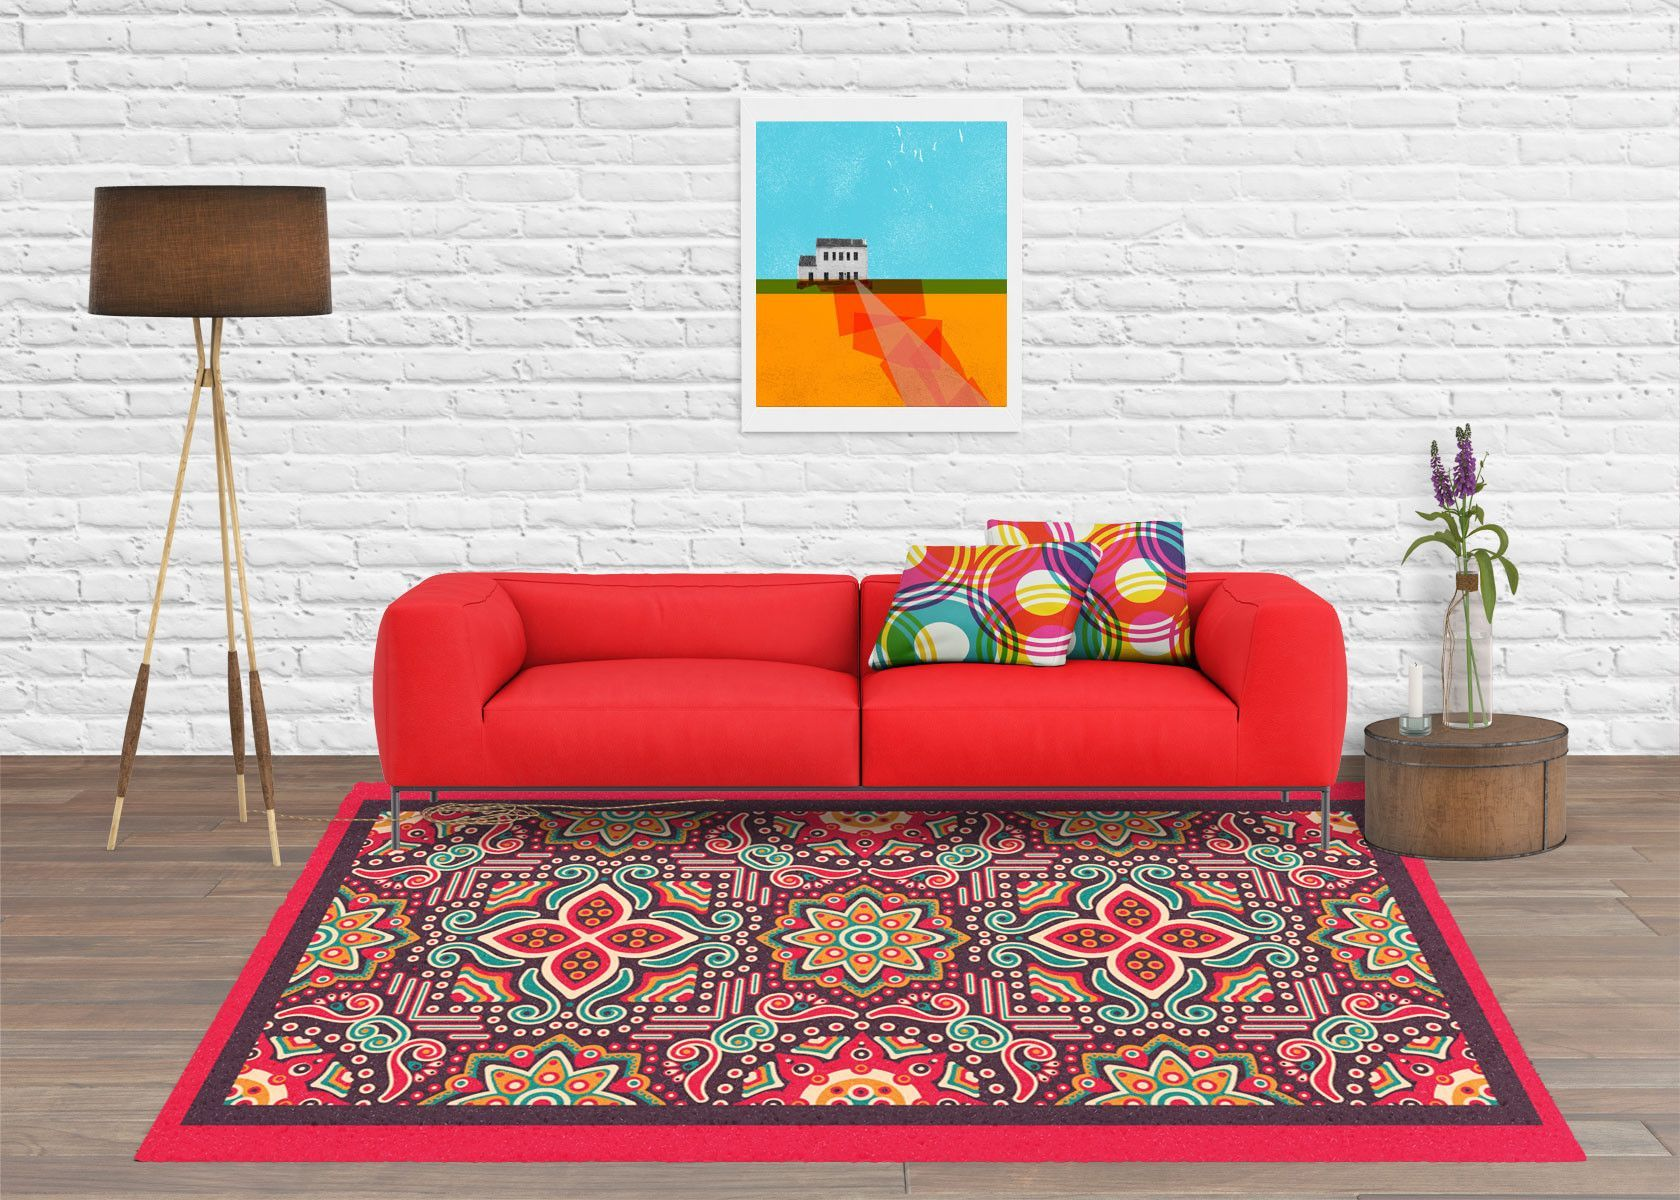 Mexican rug - 5x8 rugs - modern rug - contemporary rugs